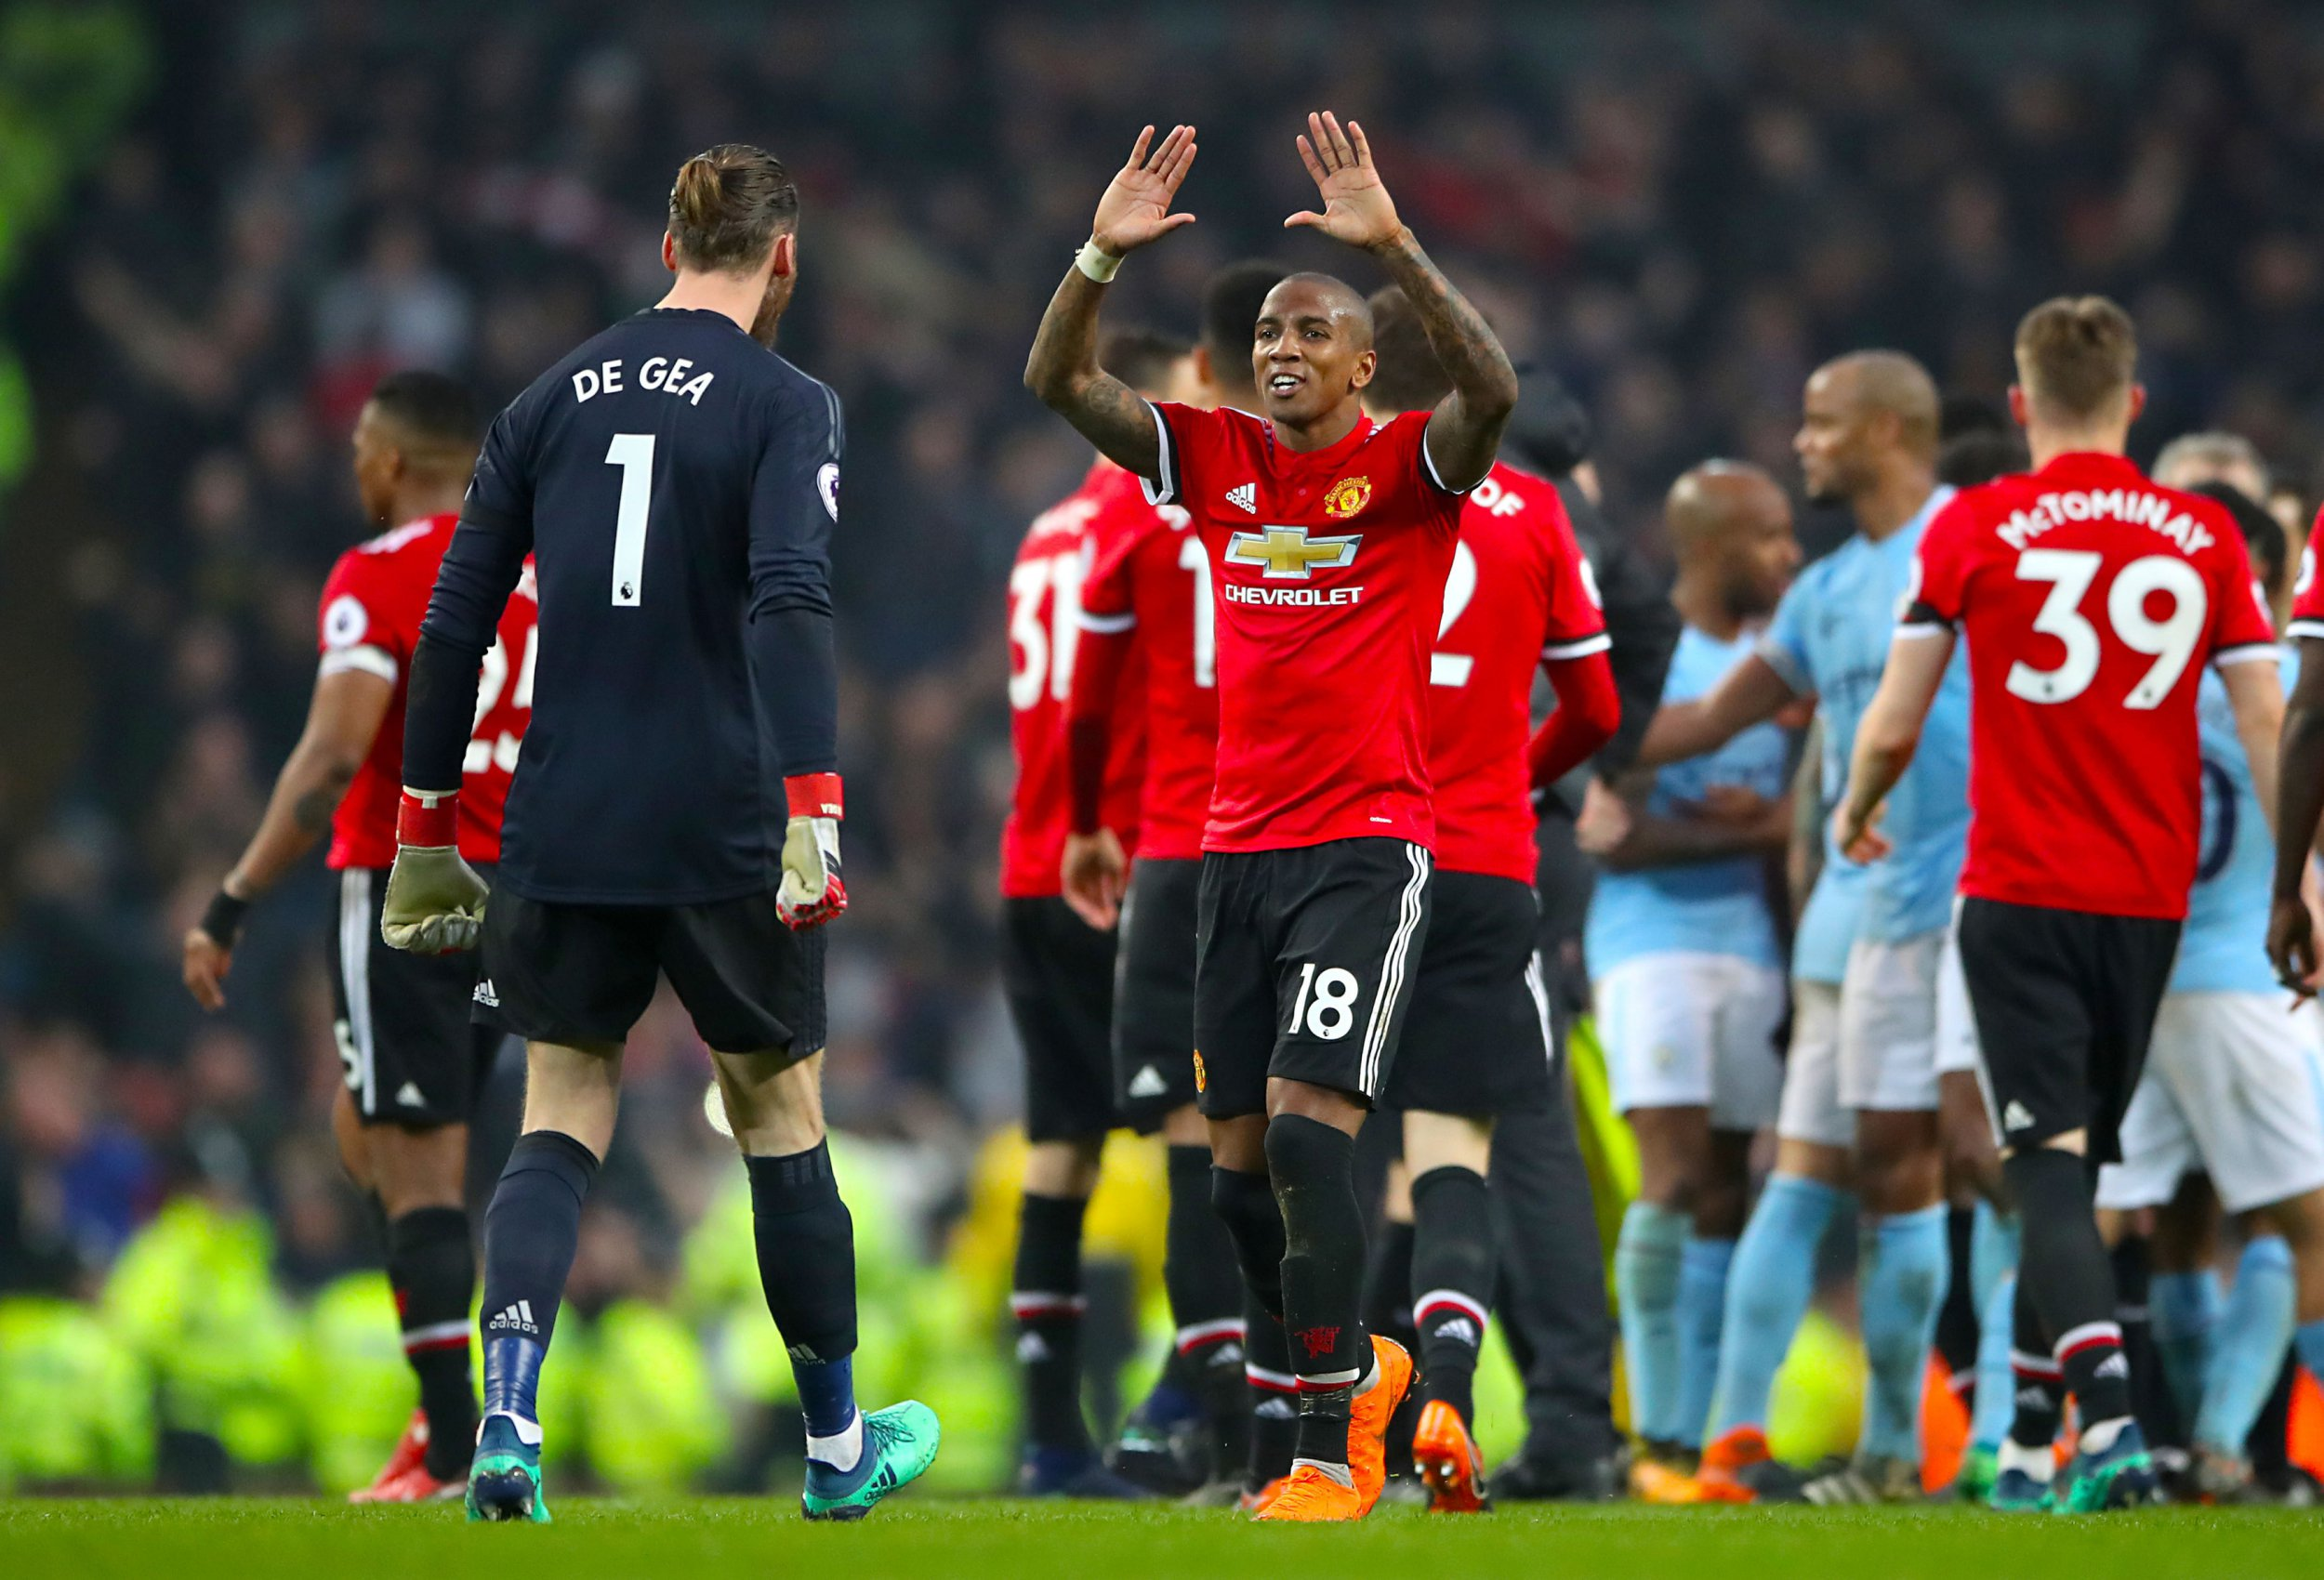 """Manchester United goalkeeper David De Gea (left) and Manchester United's Ashley Young celebrate after the final whistle of the Premier League match at the Etihad Stadium, Manchester. PRESS ASSOCIATION Photo. Picture date: Saturday April 7, 2018. See PA story SOCCER Man City. Photo credit should read: Nick Potts/PA Wire. RESTRICTIONS: EDITORIAL USE ONLY No use with unauthorised audio, video, data, fixture lists, club/league logos or """"live"""" services. Online in-match use limited to 75 images, no video emulation. No use in betting, games or single club/league/player publications."""